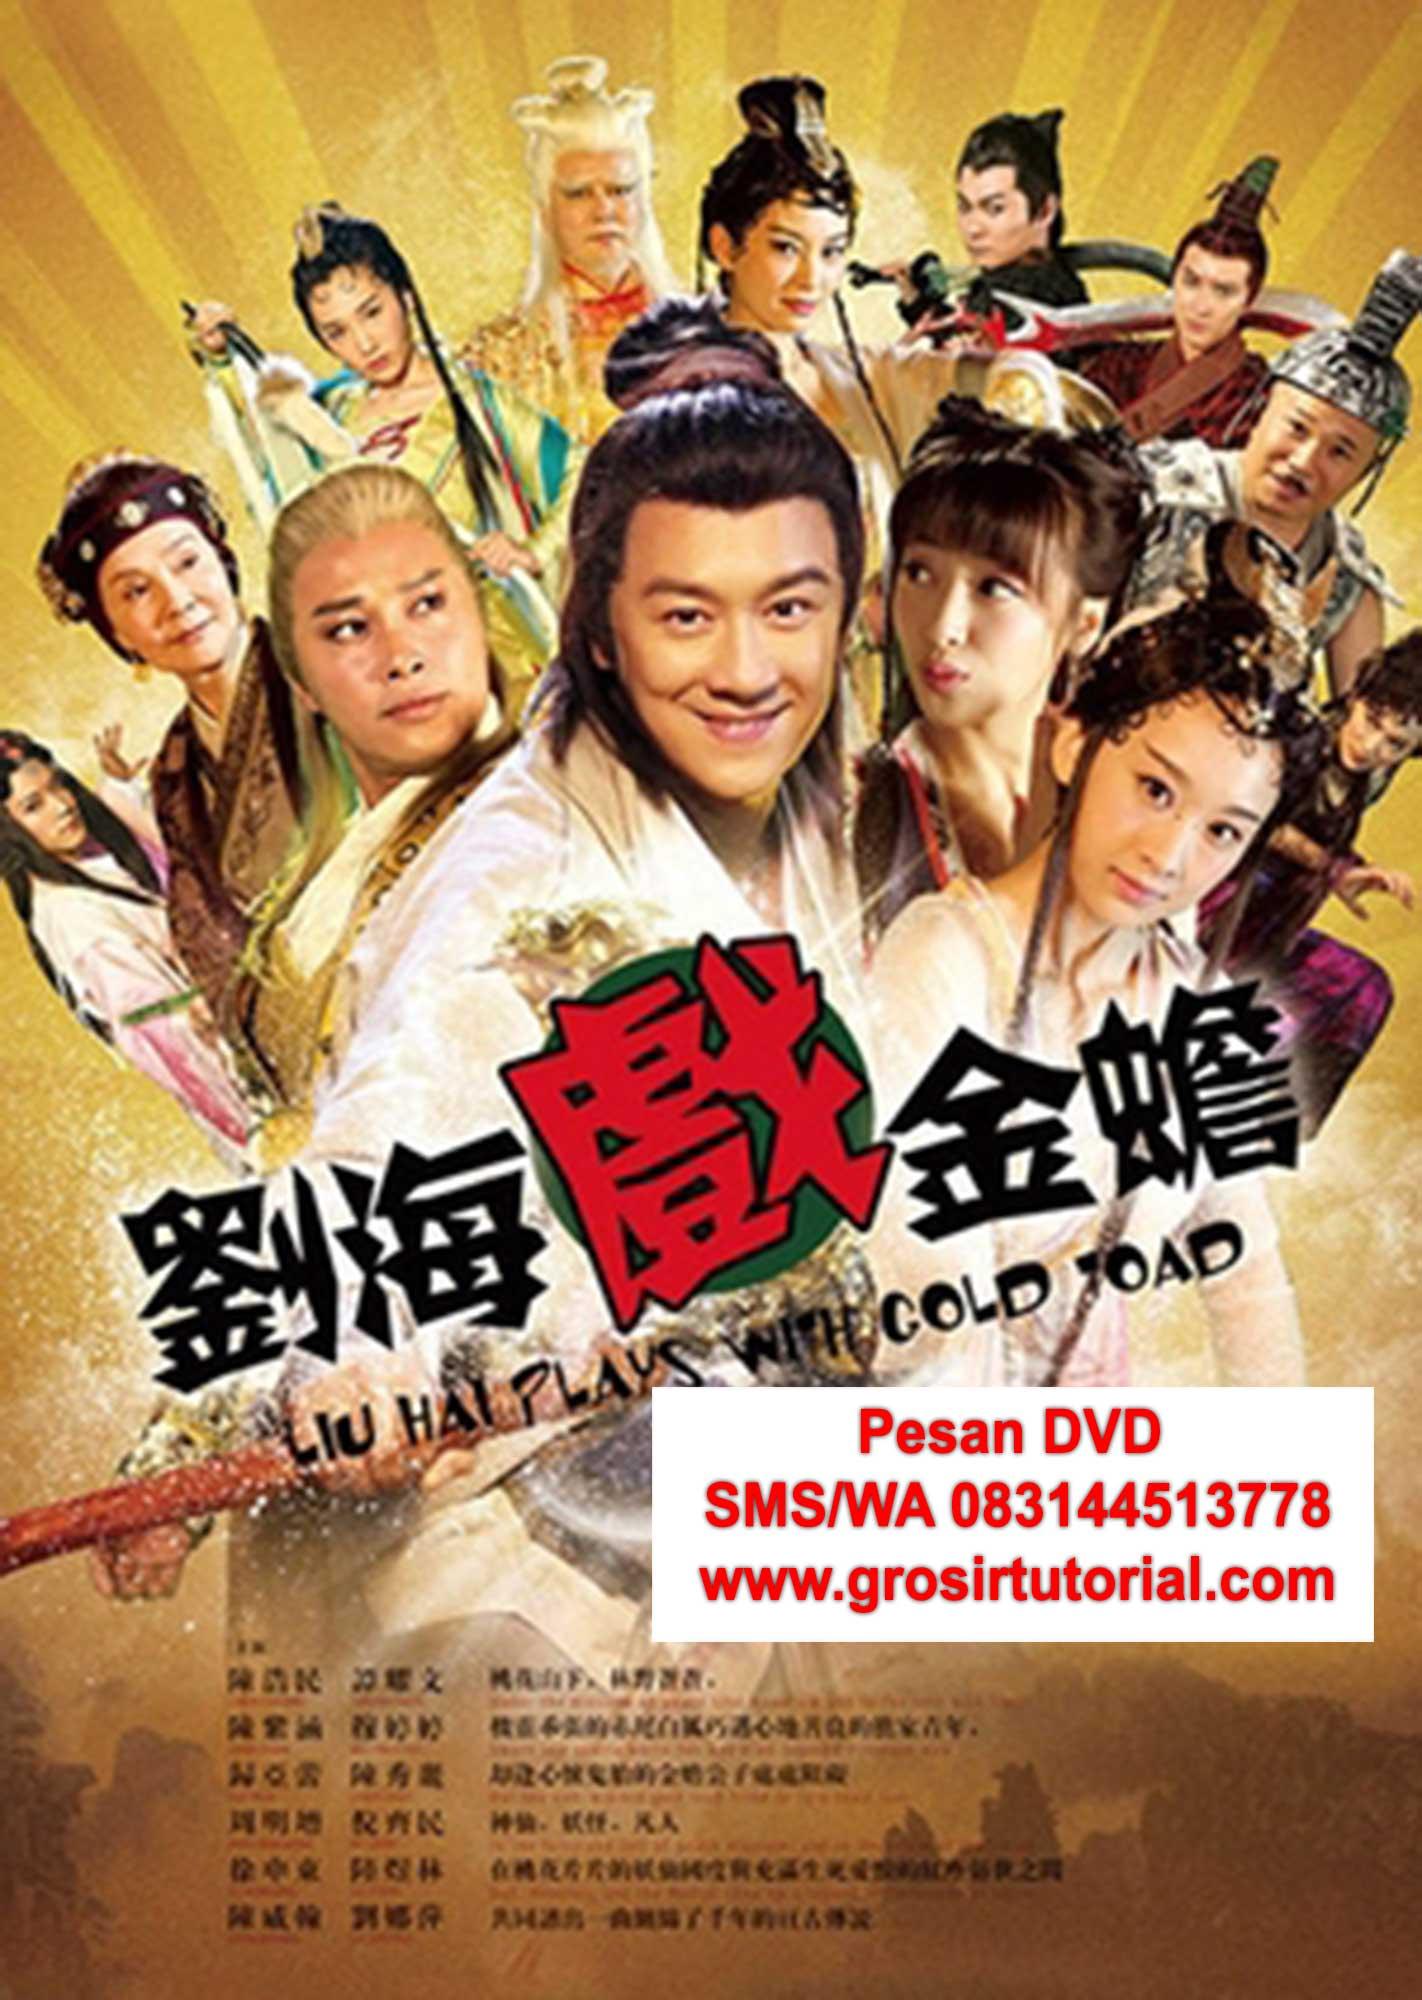 cari-DVD-mandarin-The-Story-Of-Liu-Hai-And-Junchan